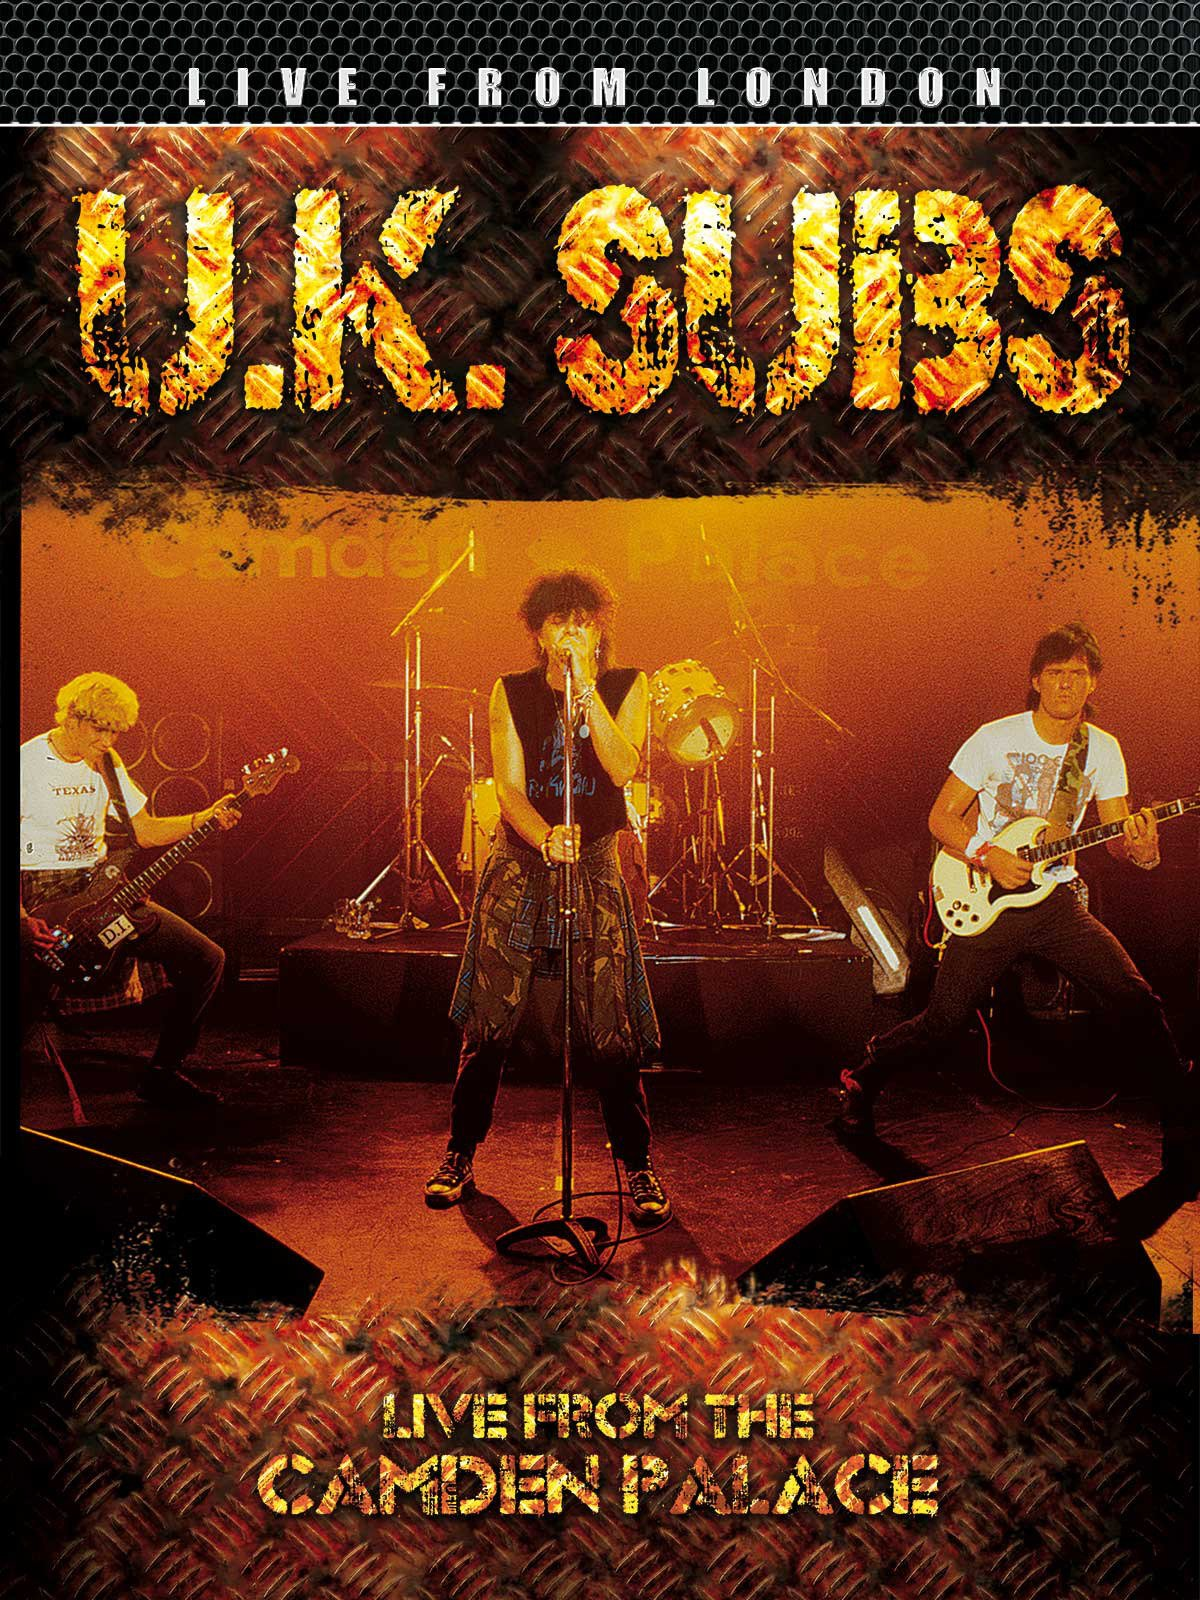 U.K. Subs - Live From London